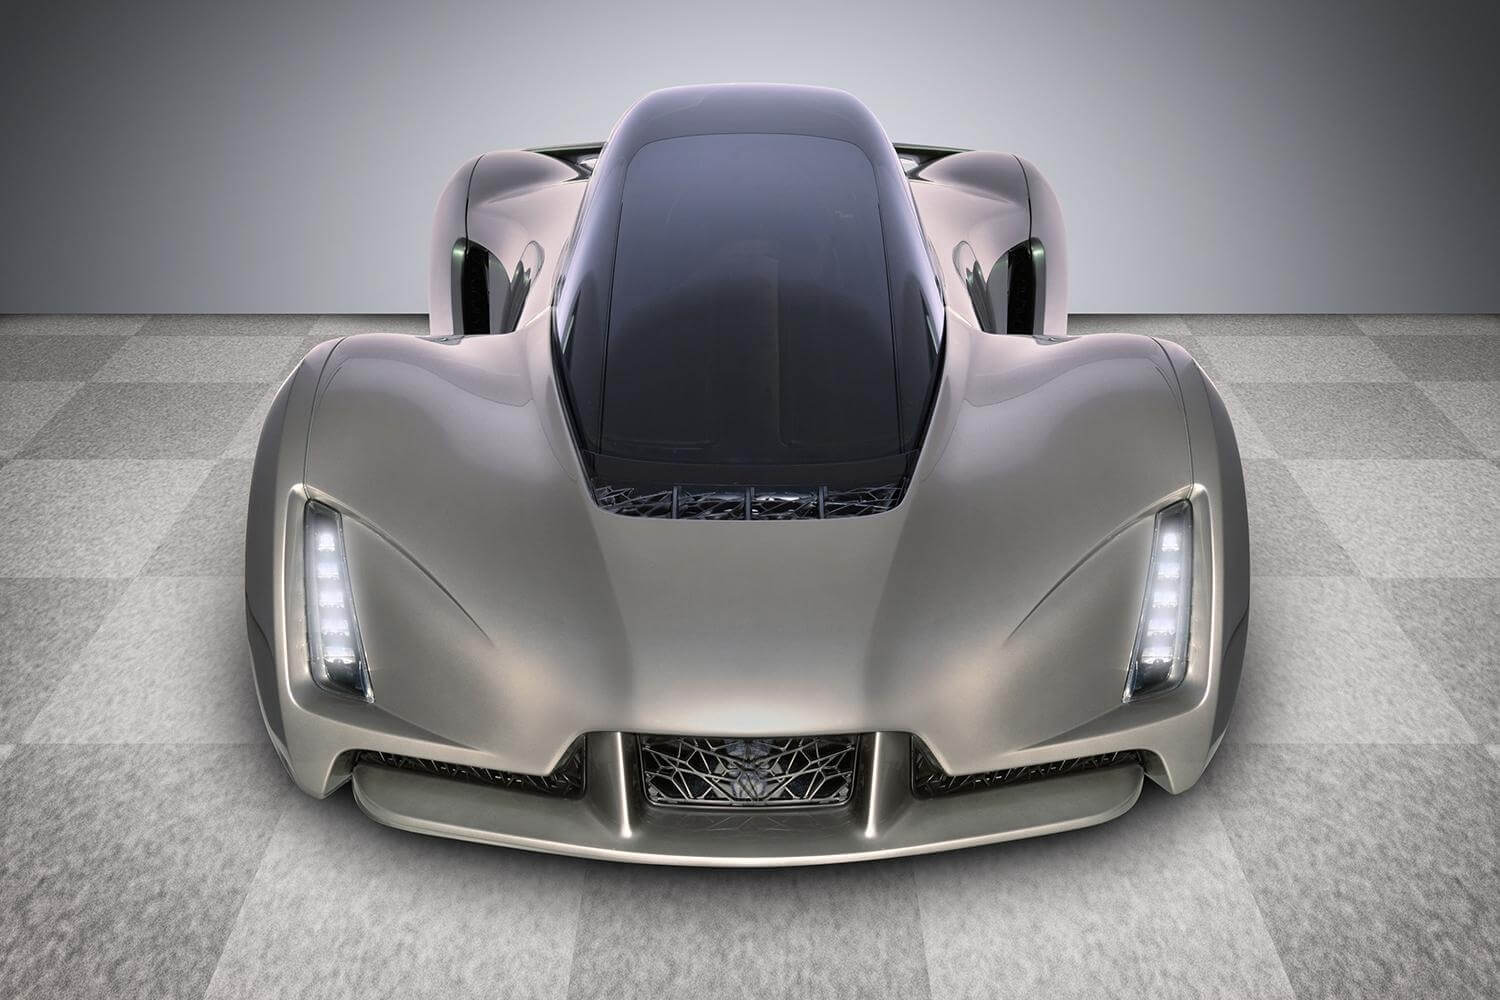 3D Printed High Performance Car